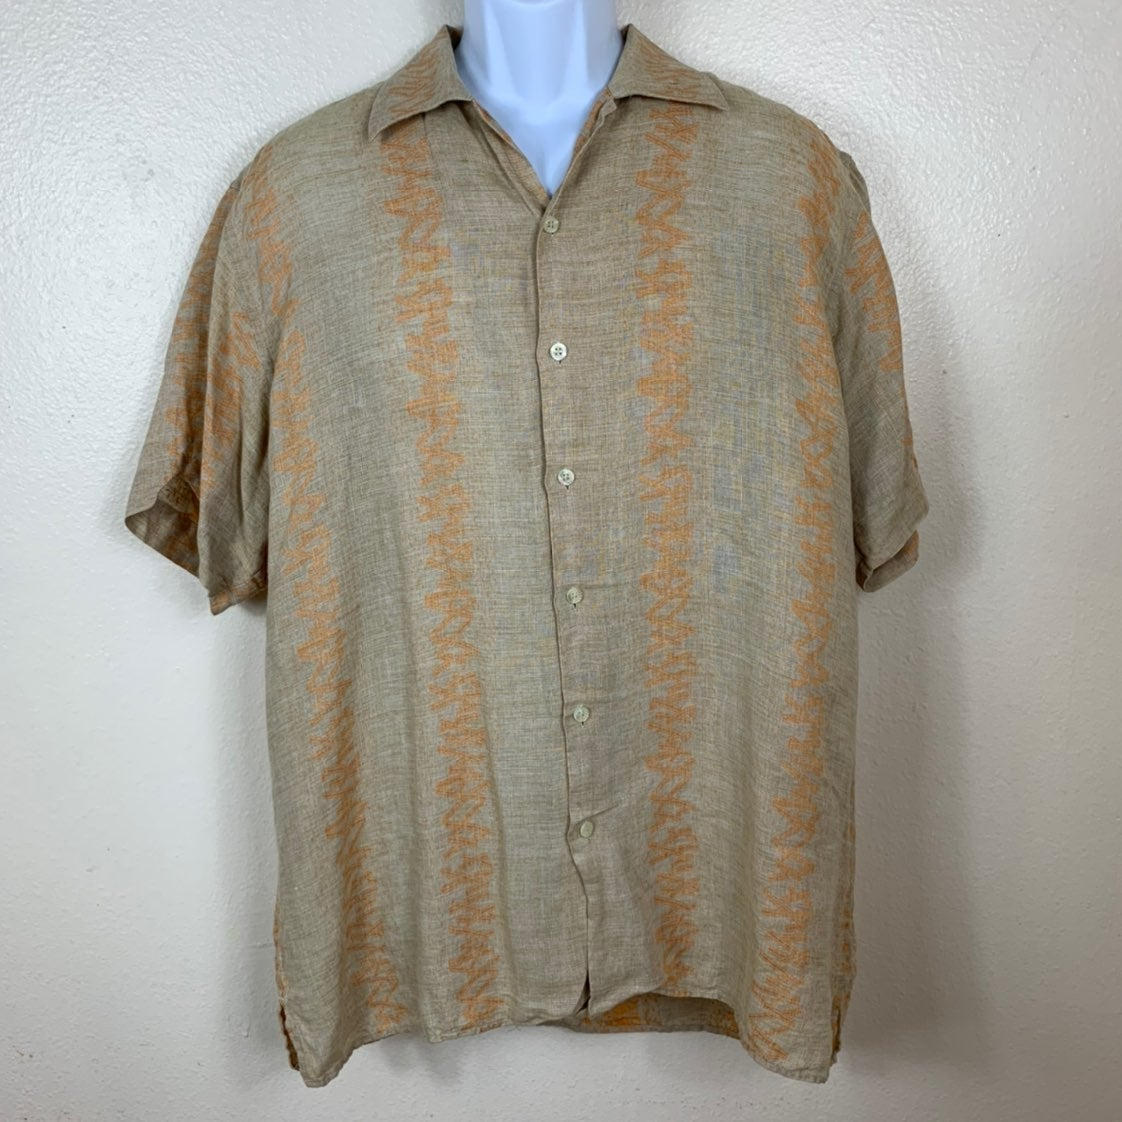 EQUILIBRIO Men's Shirt made in Italy